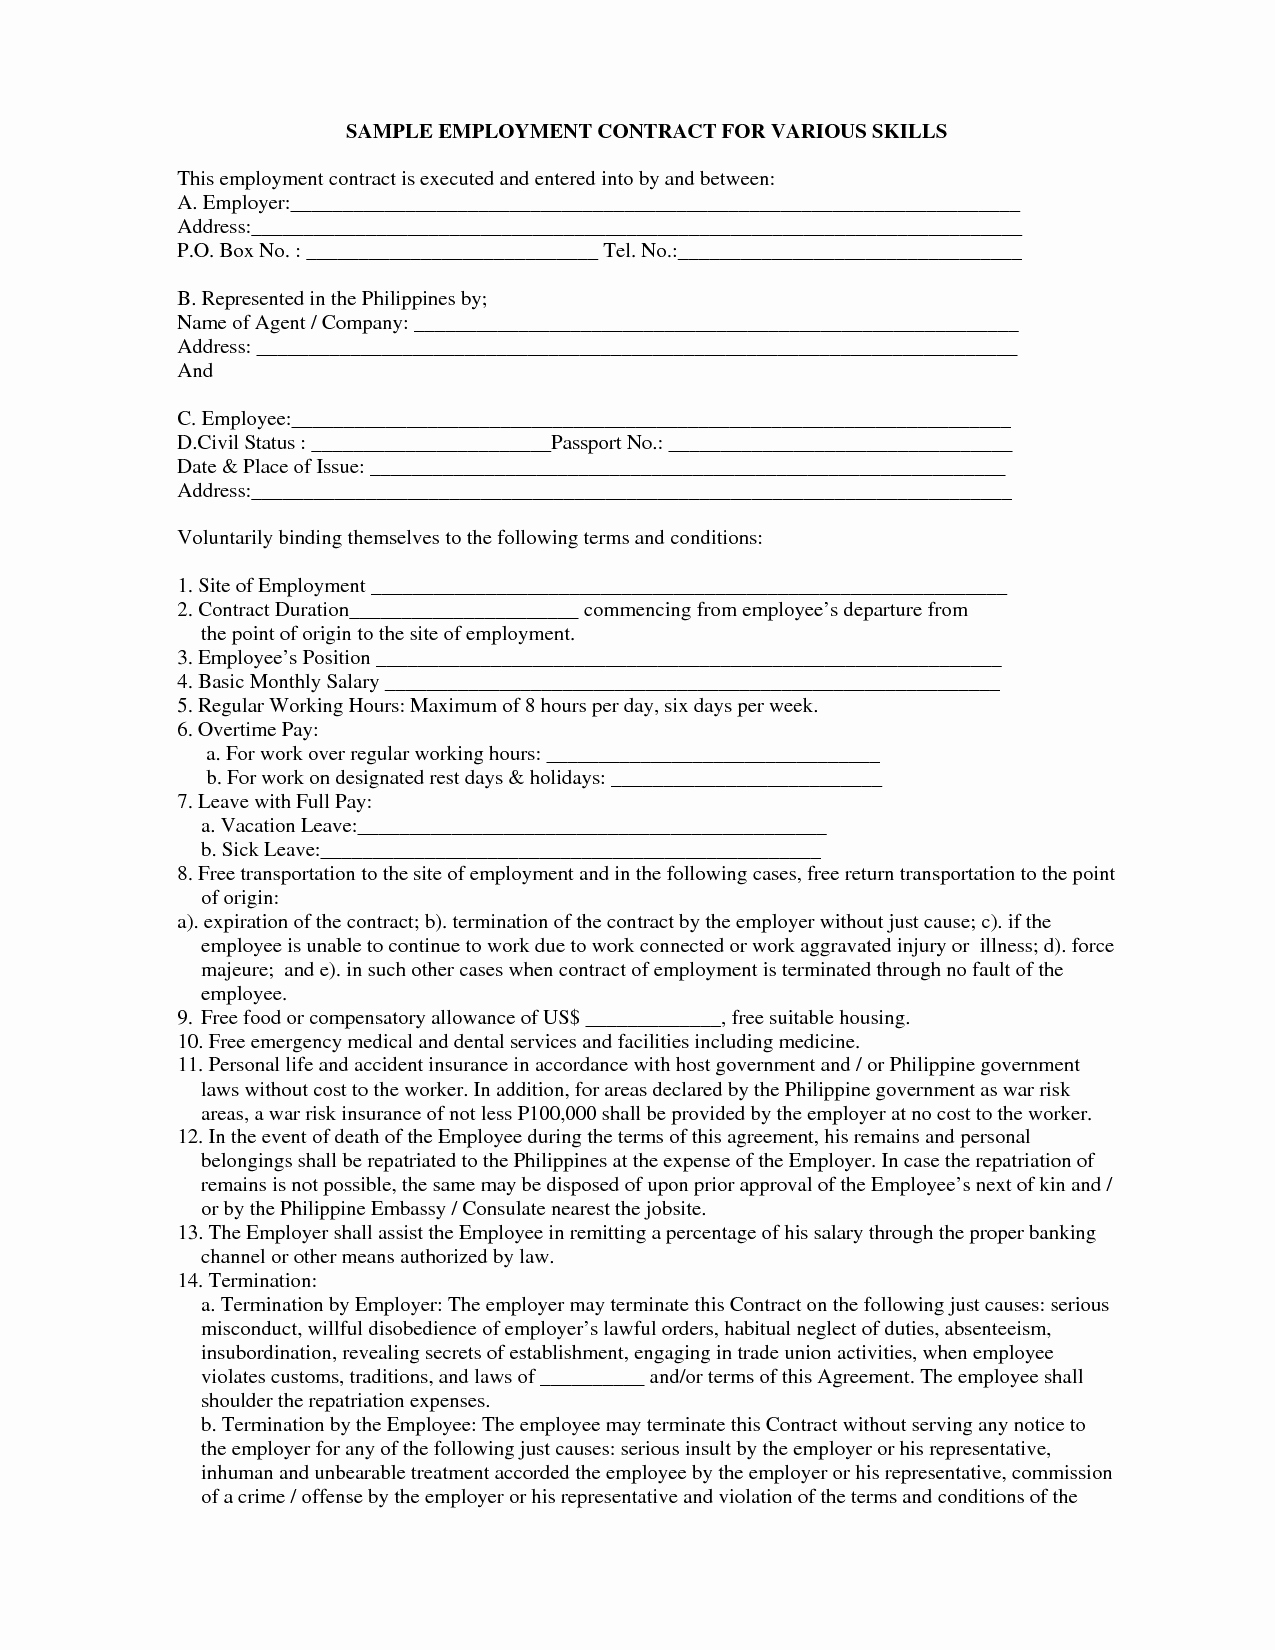 Free Employment Contract Templates Beautiful Employment Contract Sample Images Employment Contract